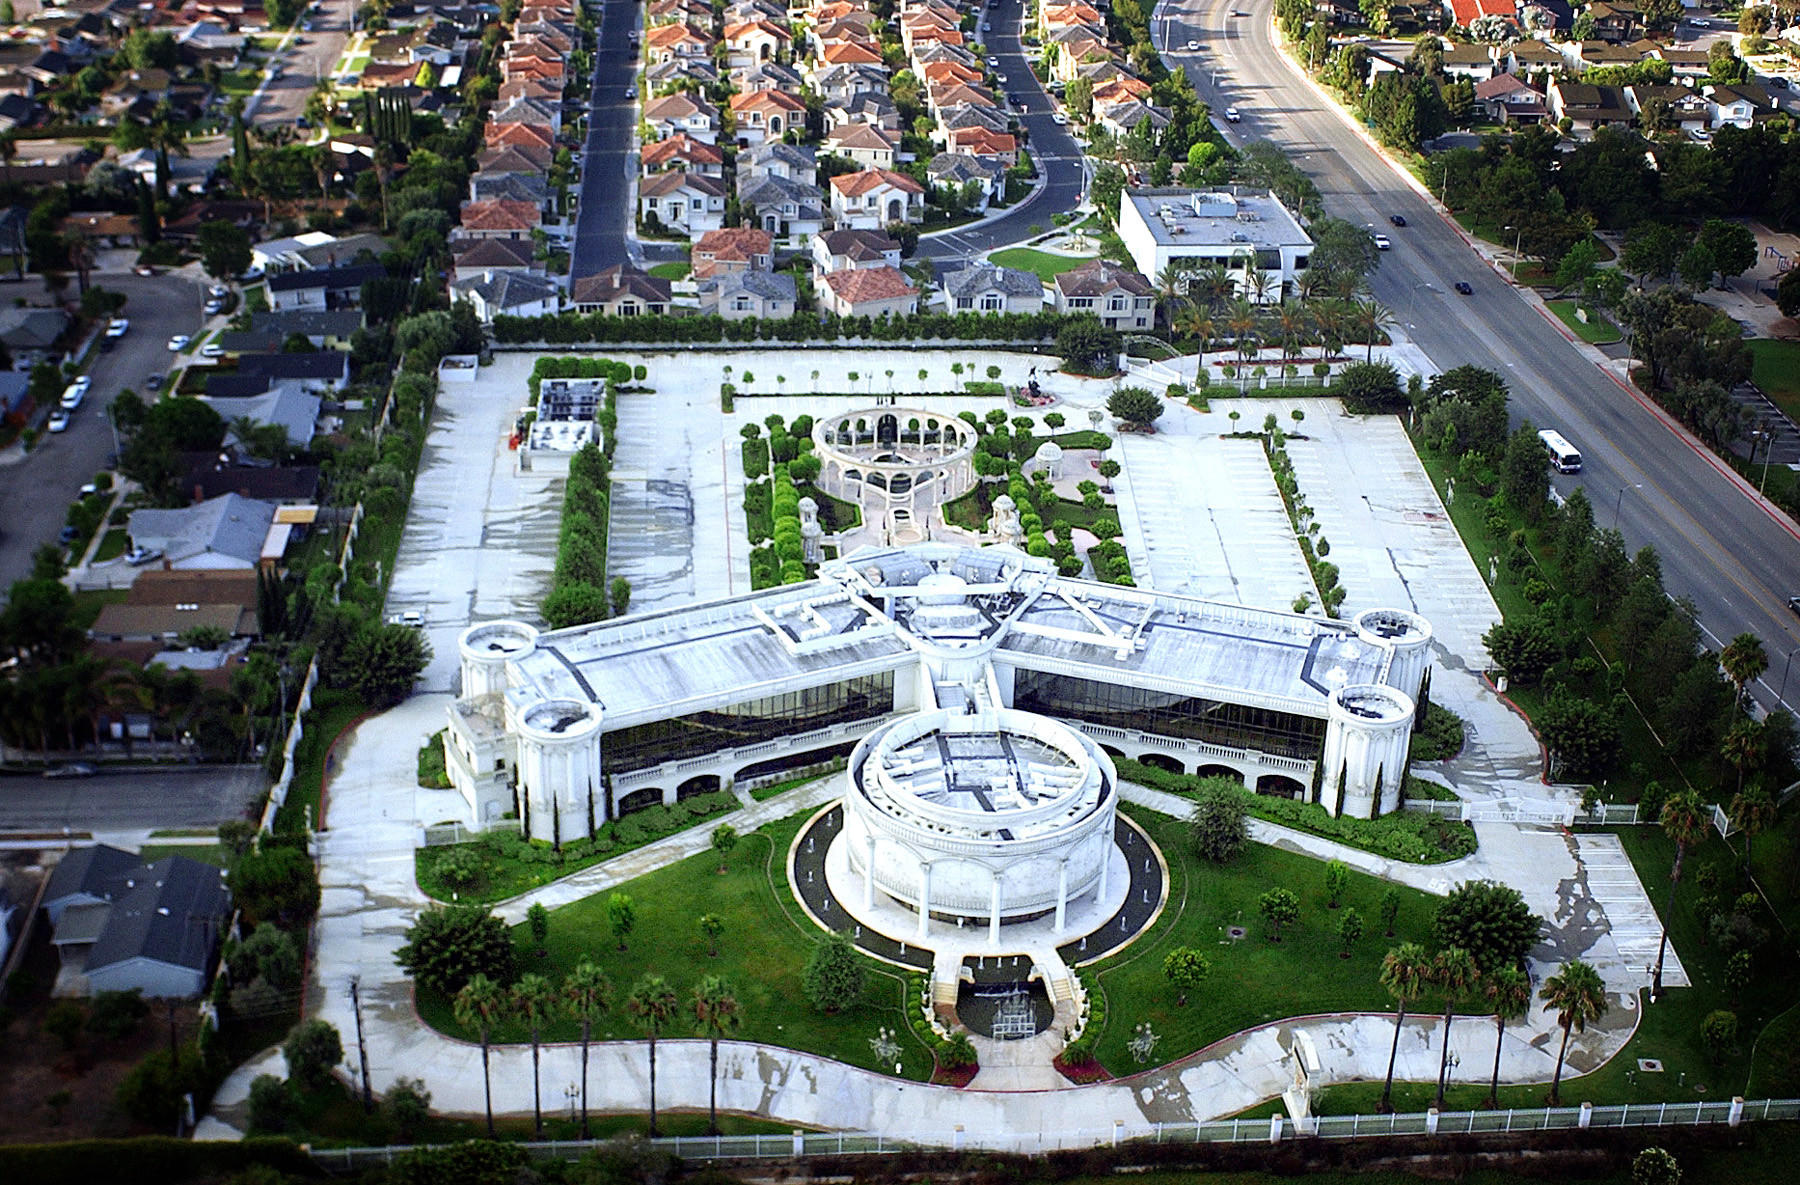 Aerial view of Trinity Broadcast Network headquarters in Costa Mesa. The lavish TBN site is well known for it